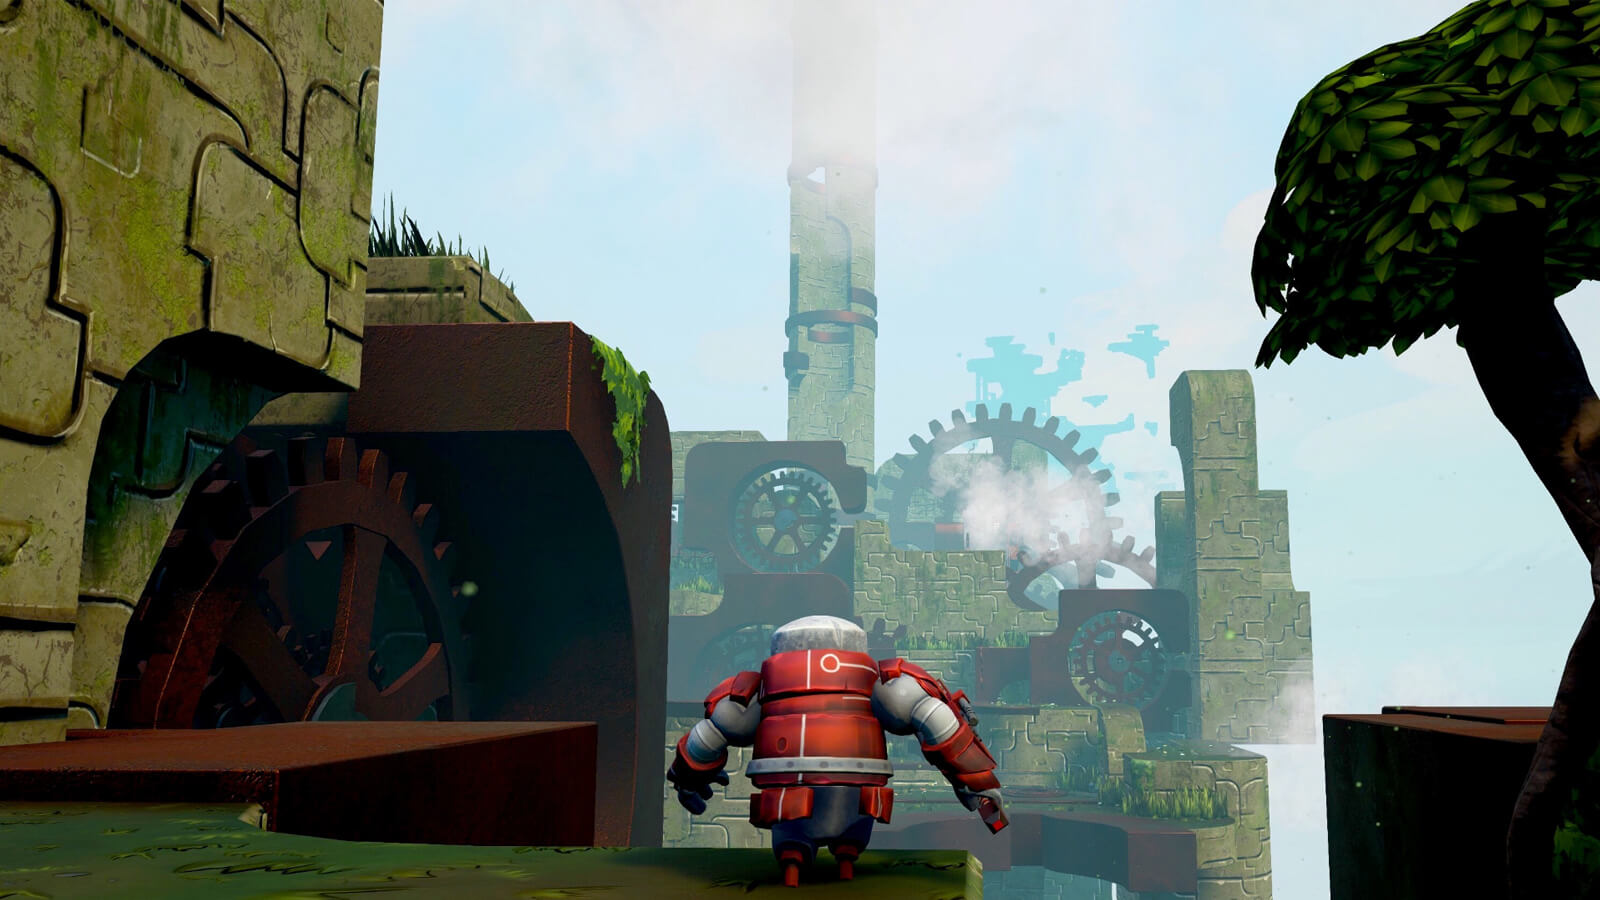 A red robot approaches the edge of a platform, an enormous, gear-powered stone structure in the distance.